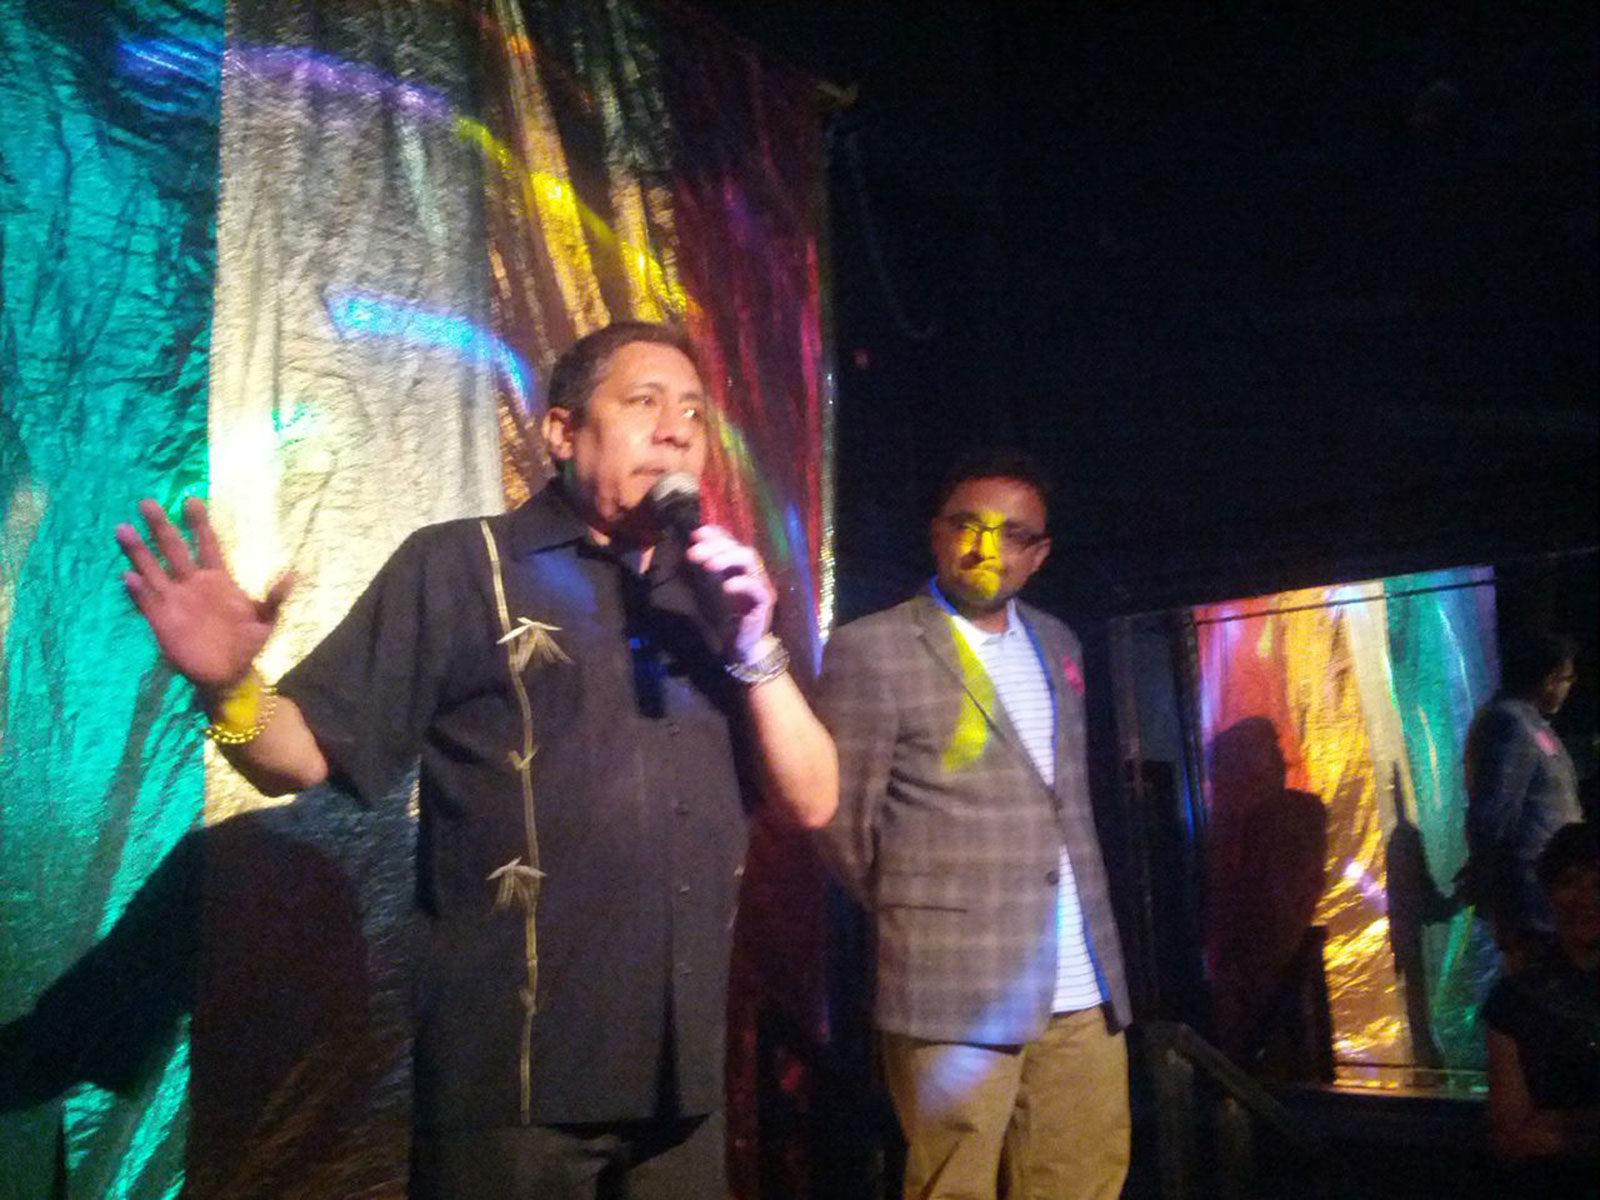 Esta Noche owner Manuel Quijamo and District 9 Supervisor David Campos speak at a fundraiser at the bar on May 18, 2013